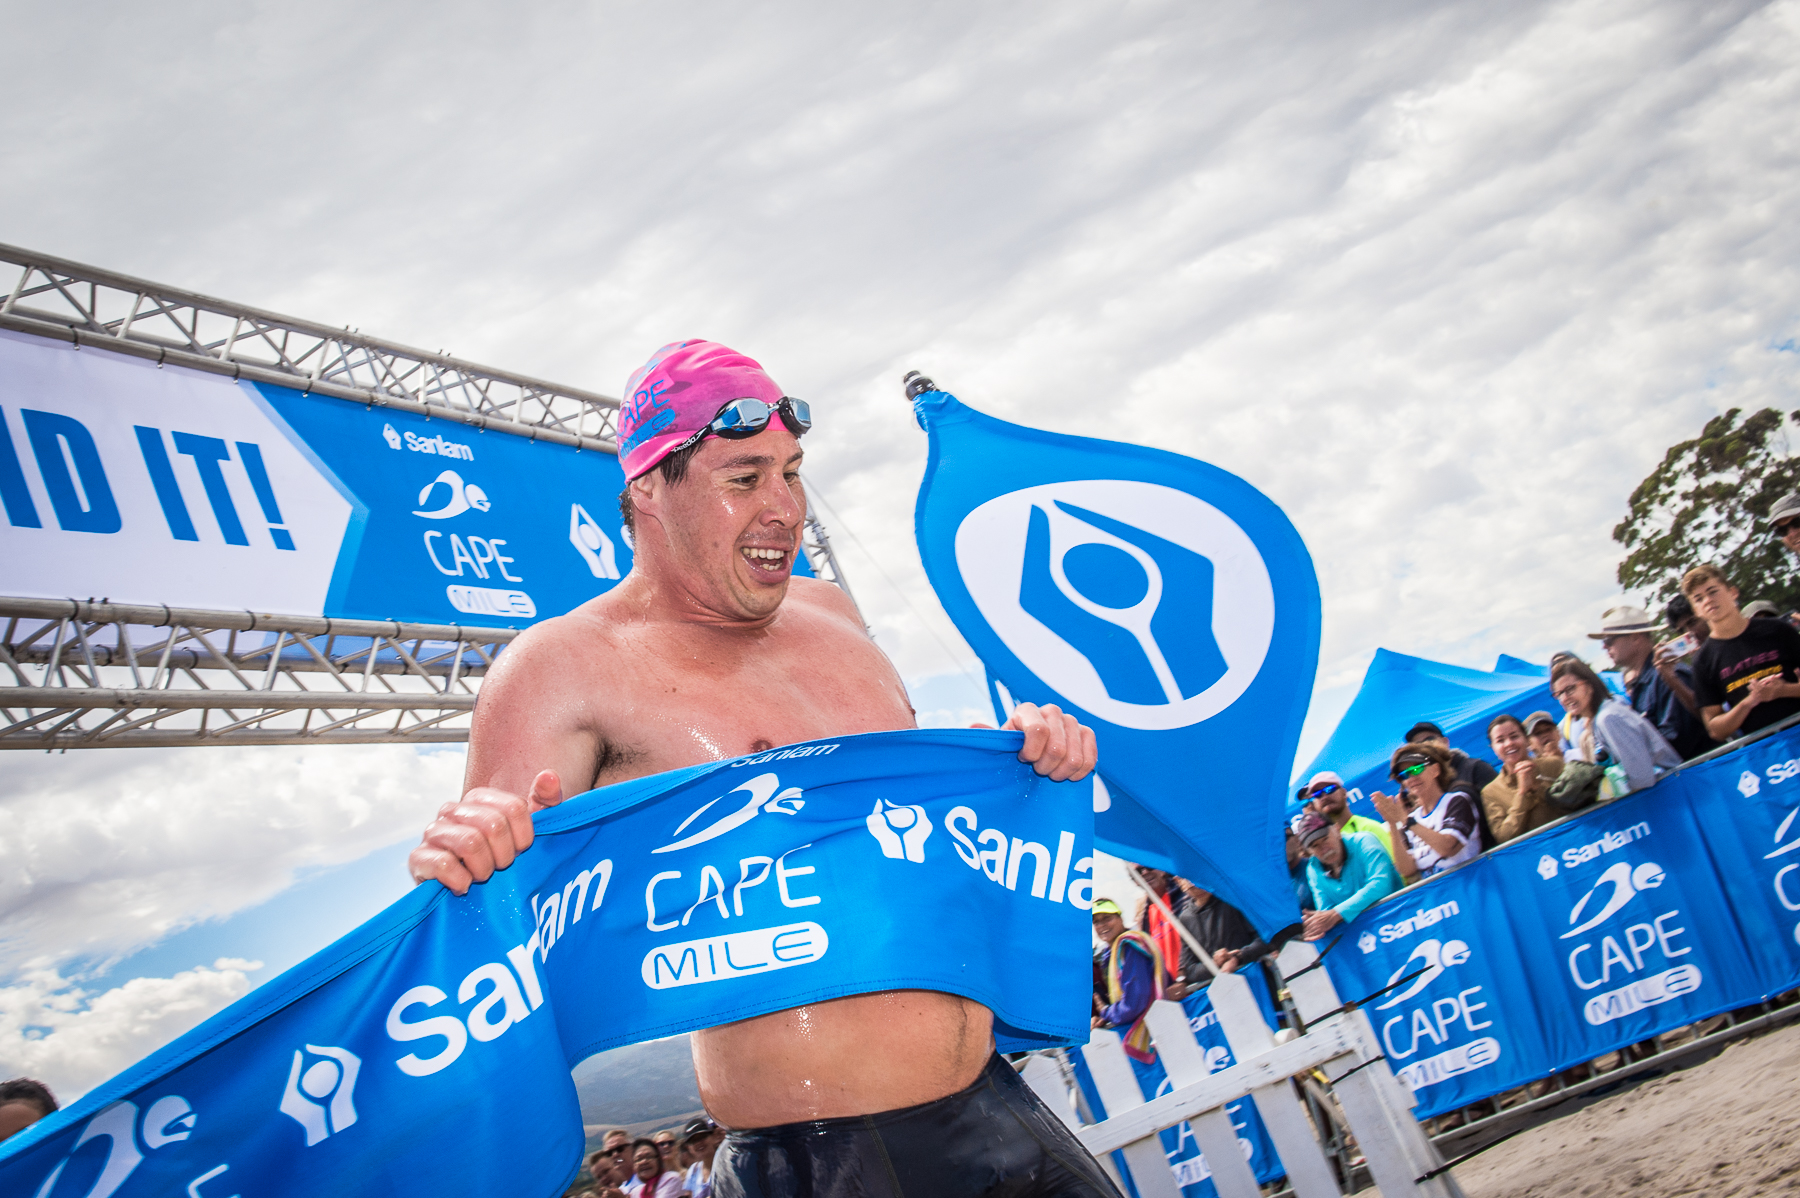 Ho, Weber on top at fourth Cape Mile